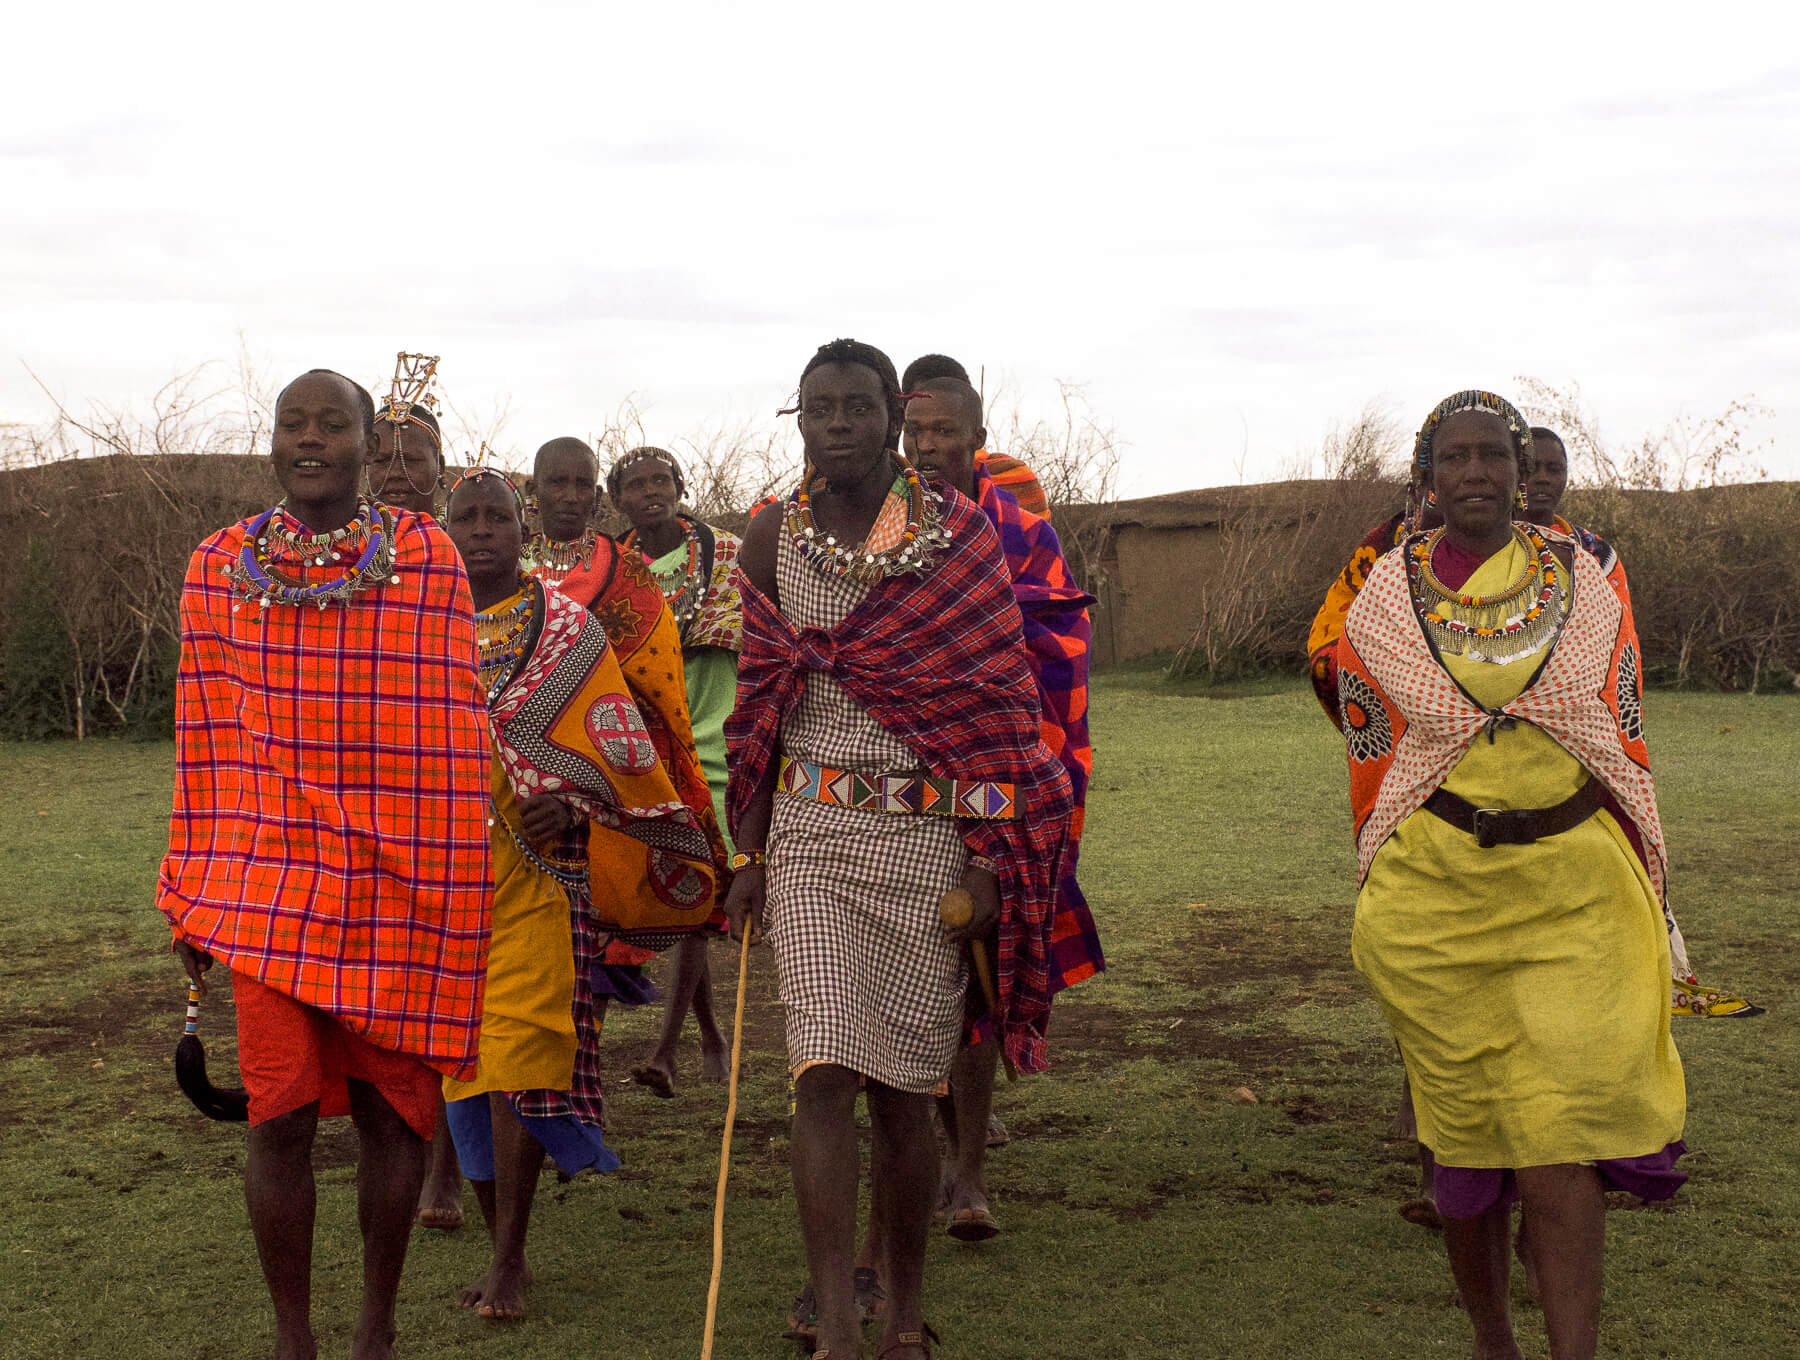 Maasai tribe walking towards the camera in their traditional dress